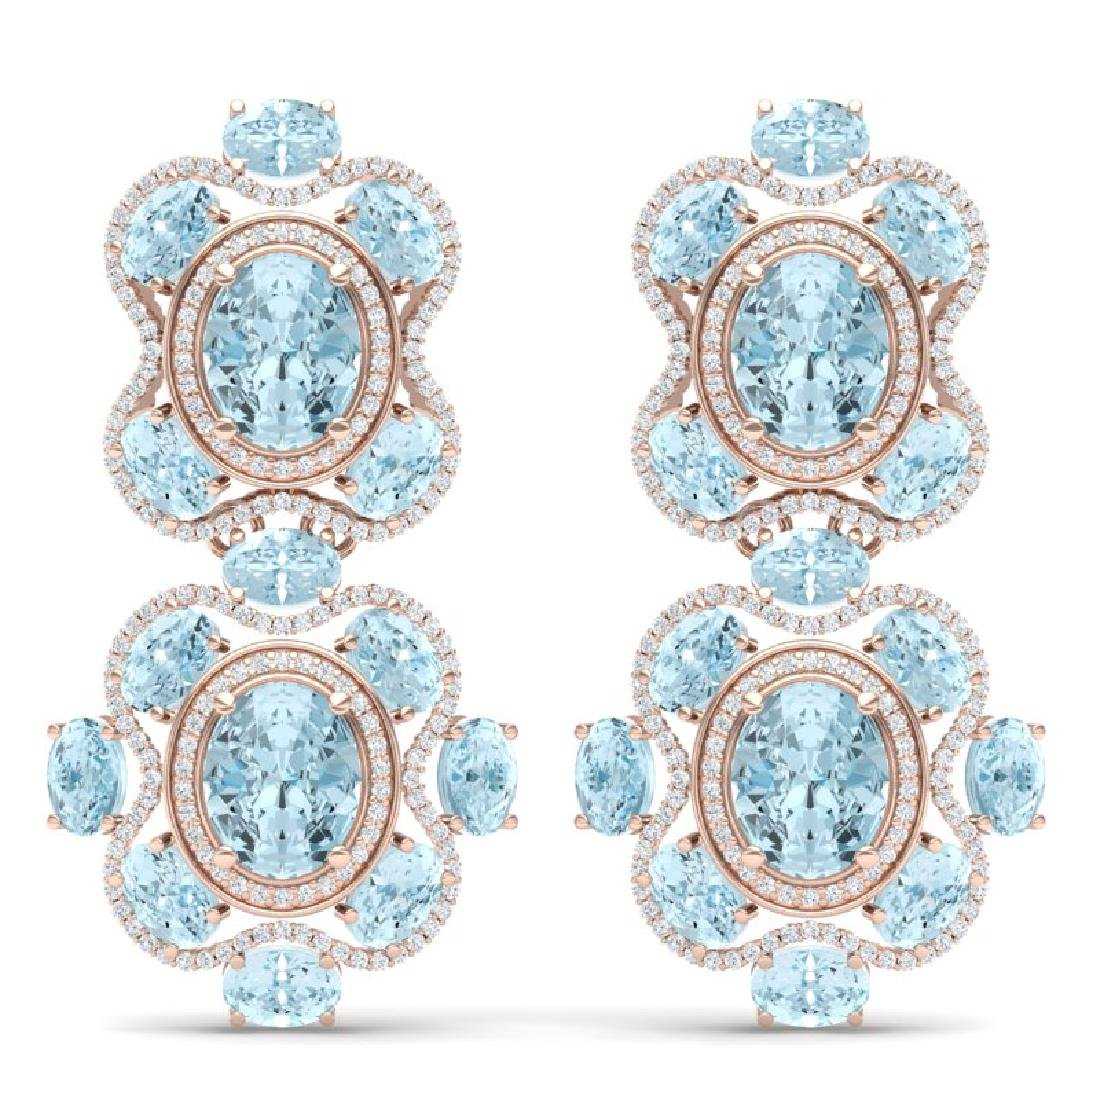 34.96 CTW Royalty Sky Topaz & VS Diamond Earrings 18K